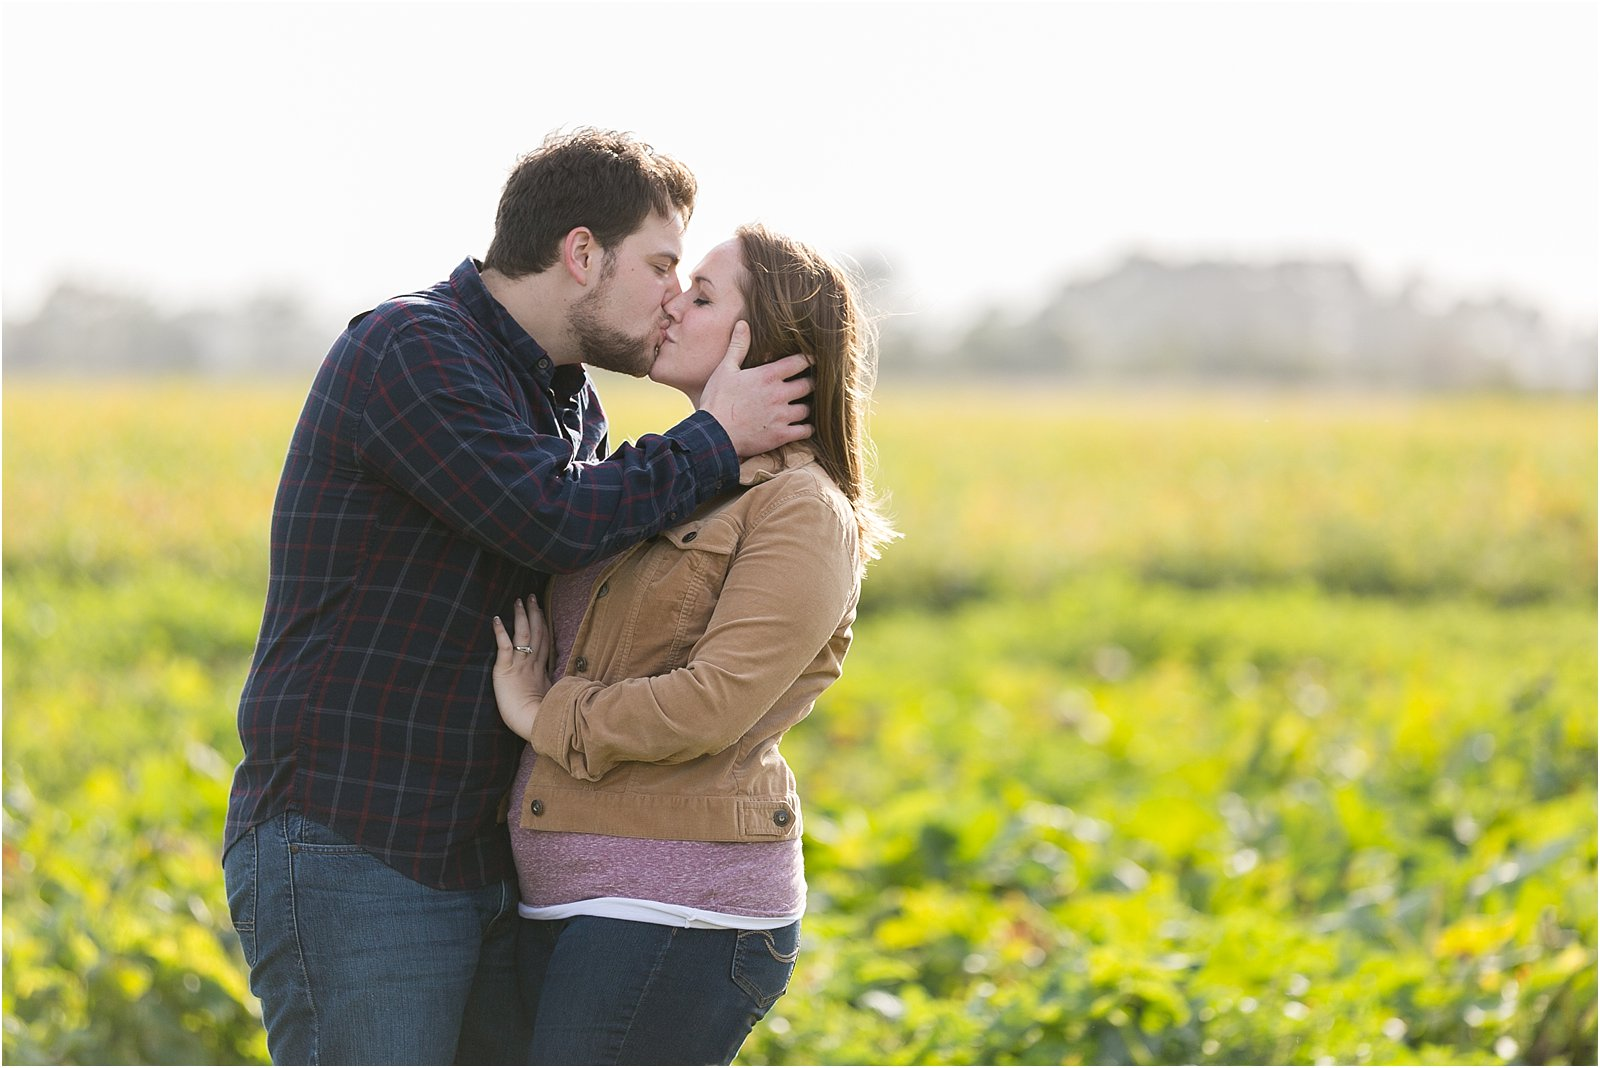 jessica_ryan_photography_pumpkin_patch_engagement_portraits_fall_october_engagements_virginia_beach_chesapeake_0283